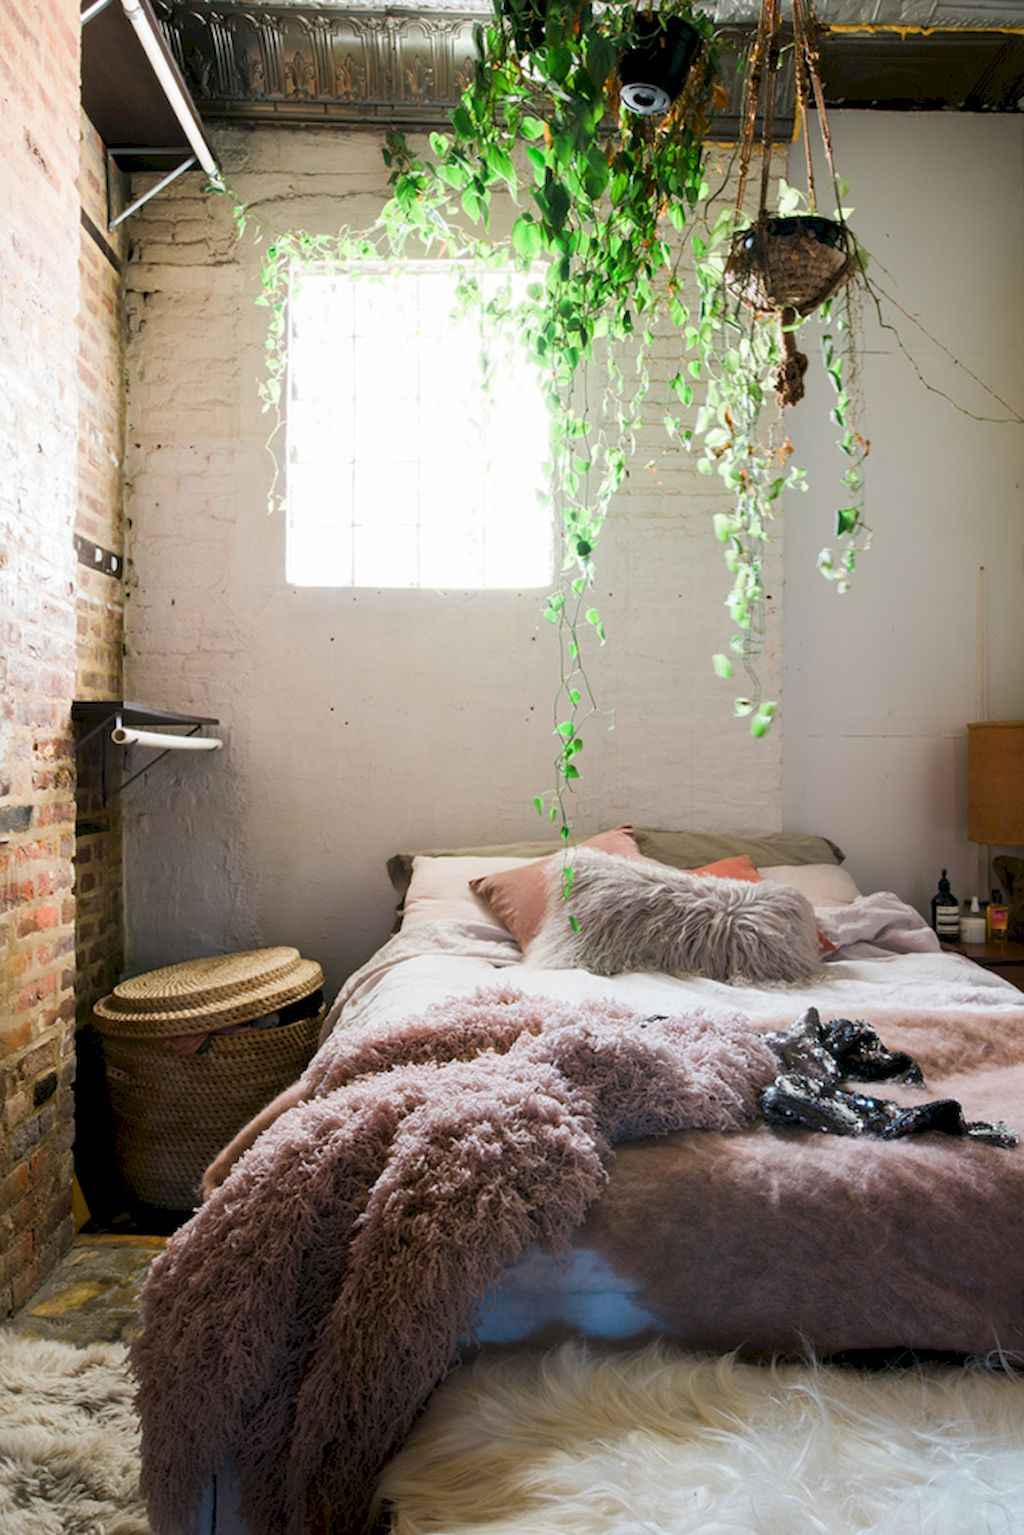 Couples first apartment decorating ideas (8)